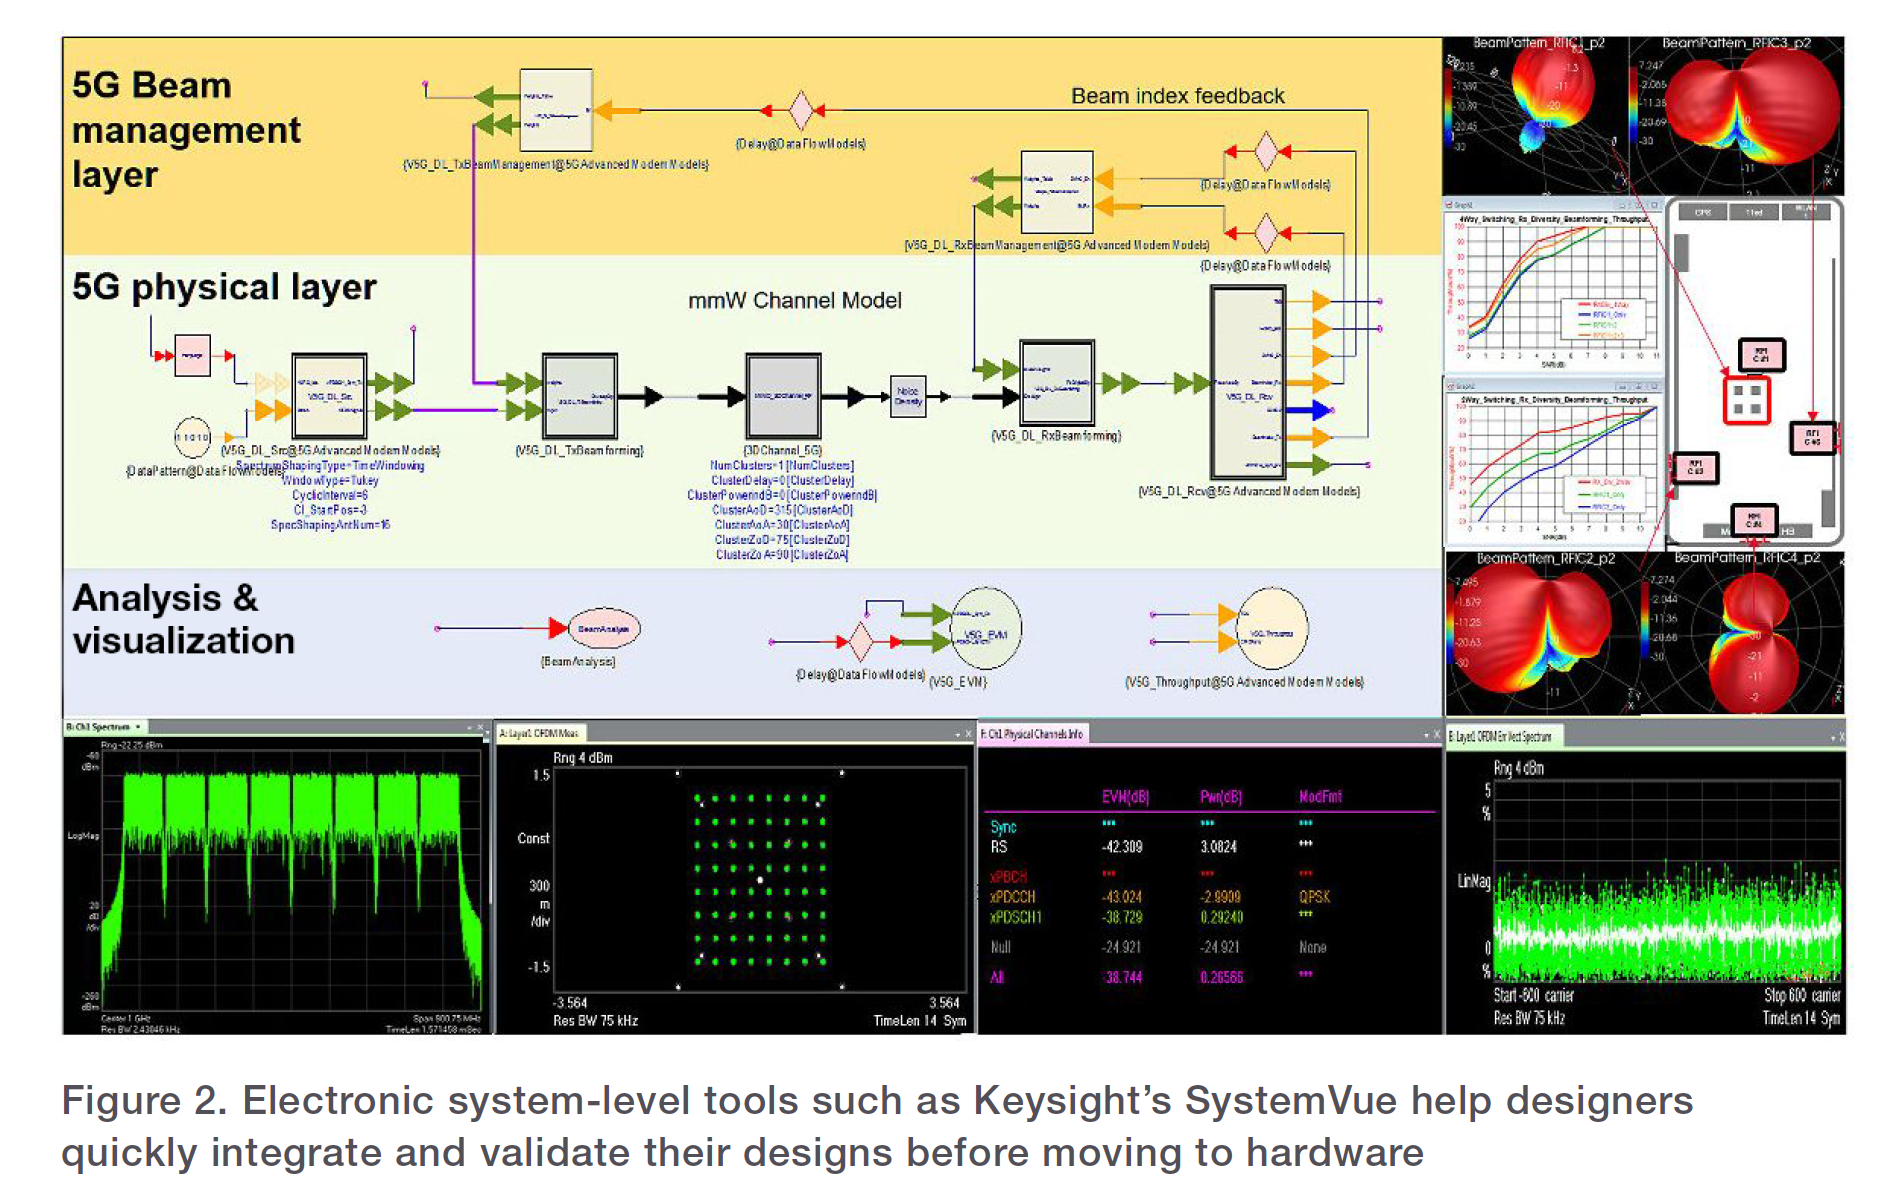 Figure 2. Electronic system-level tools such as Keysight's SystemVue help designers quickly integrate and validate their designs before moving to hardware